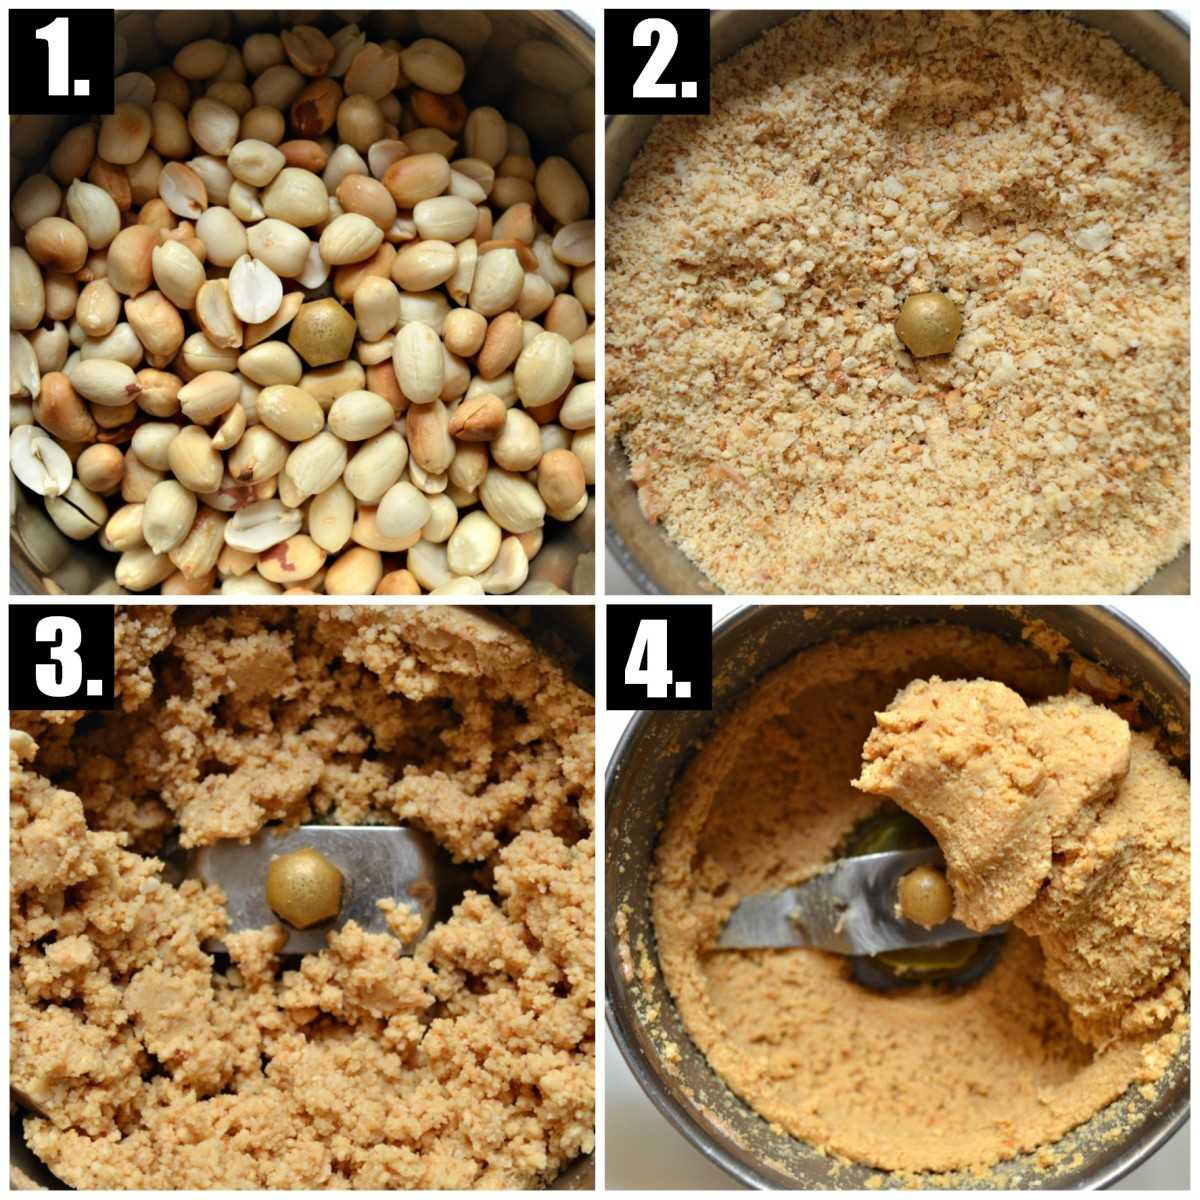 Grinding up the peanut butter is quite a process but takes no more than a few minutes!